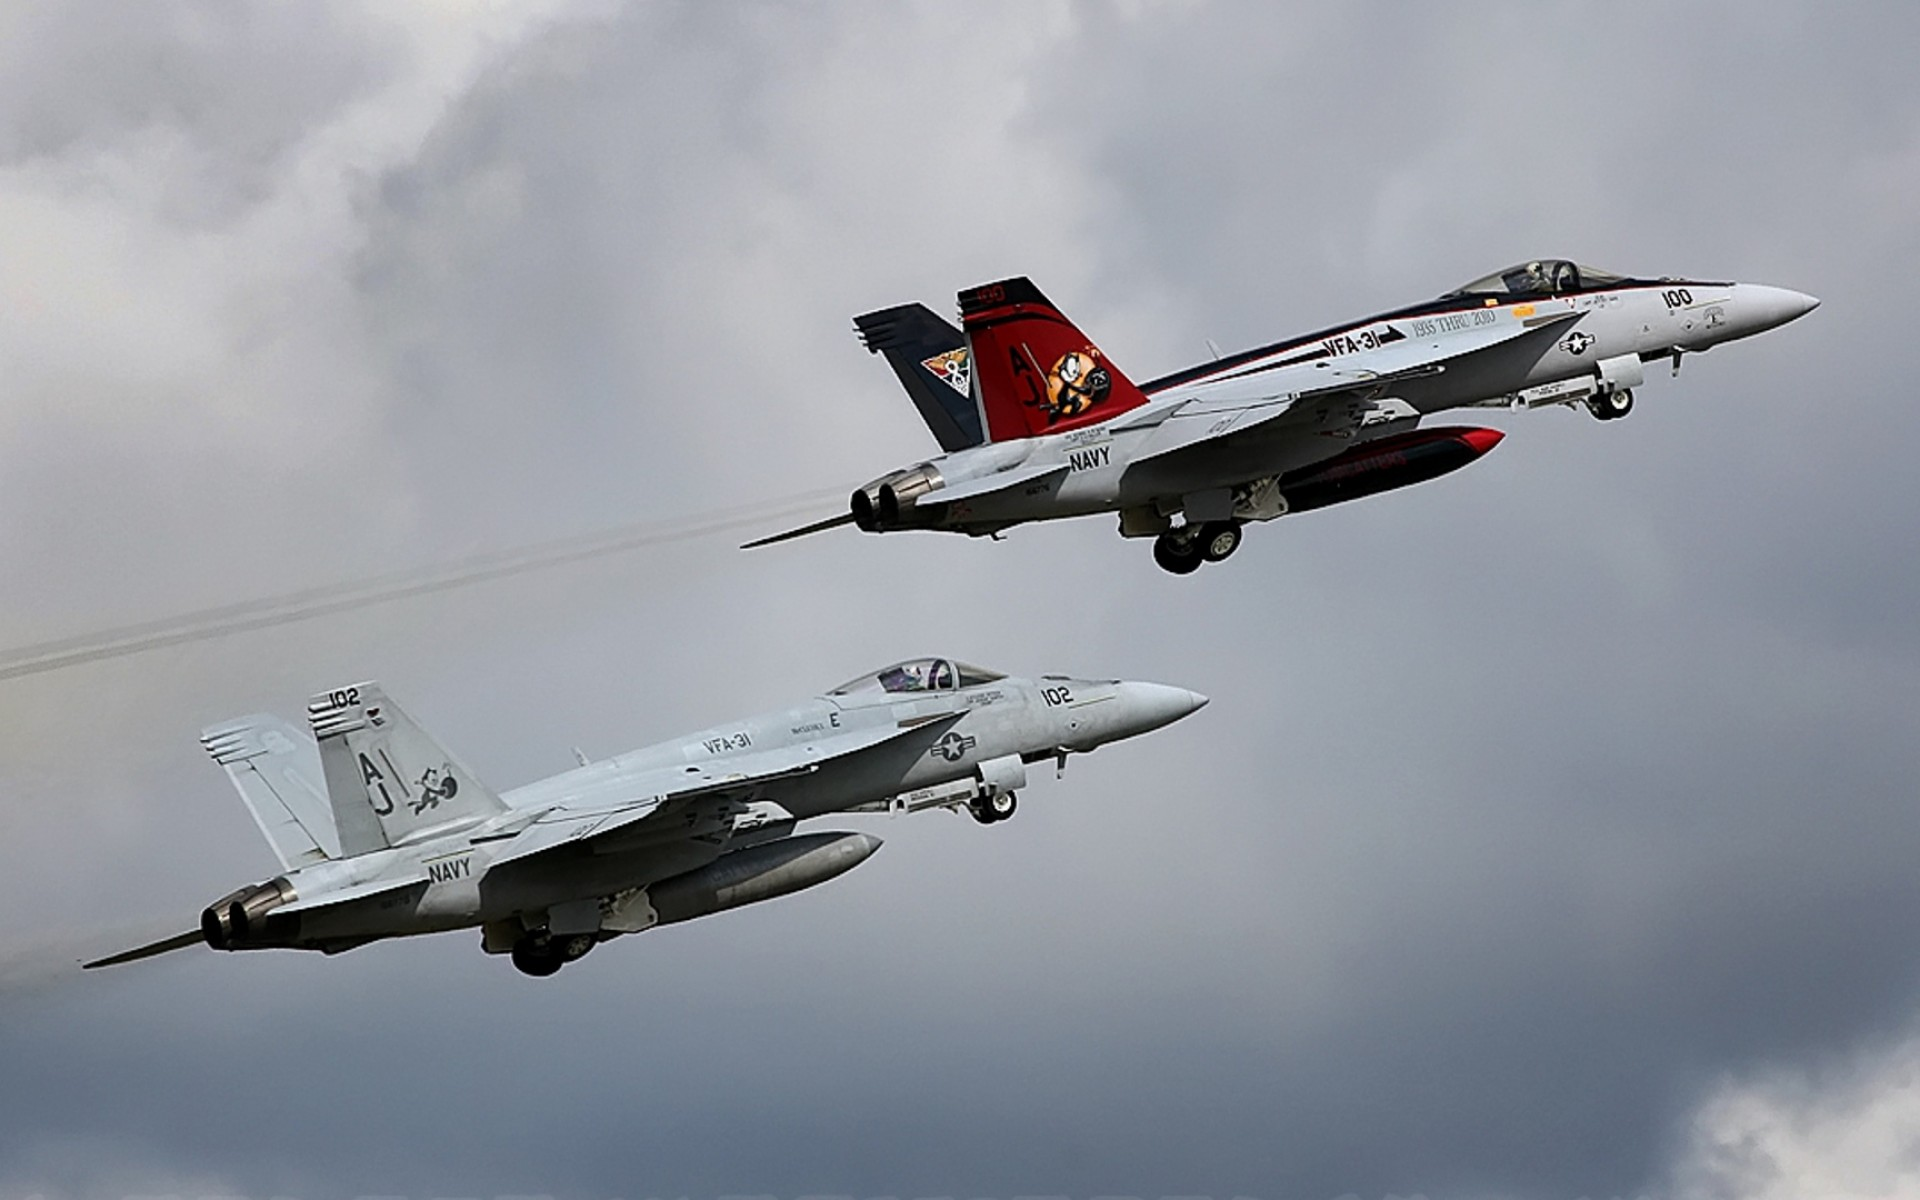 Military Fighter Jets 8064 Hd Wallpapers in Aircraft   Imagescicom 1920x1200